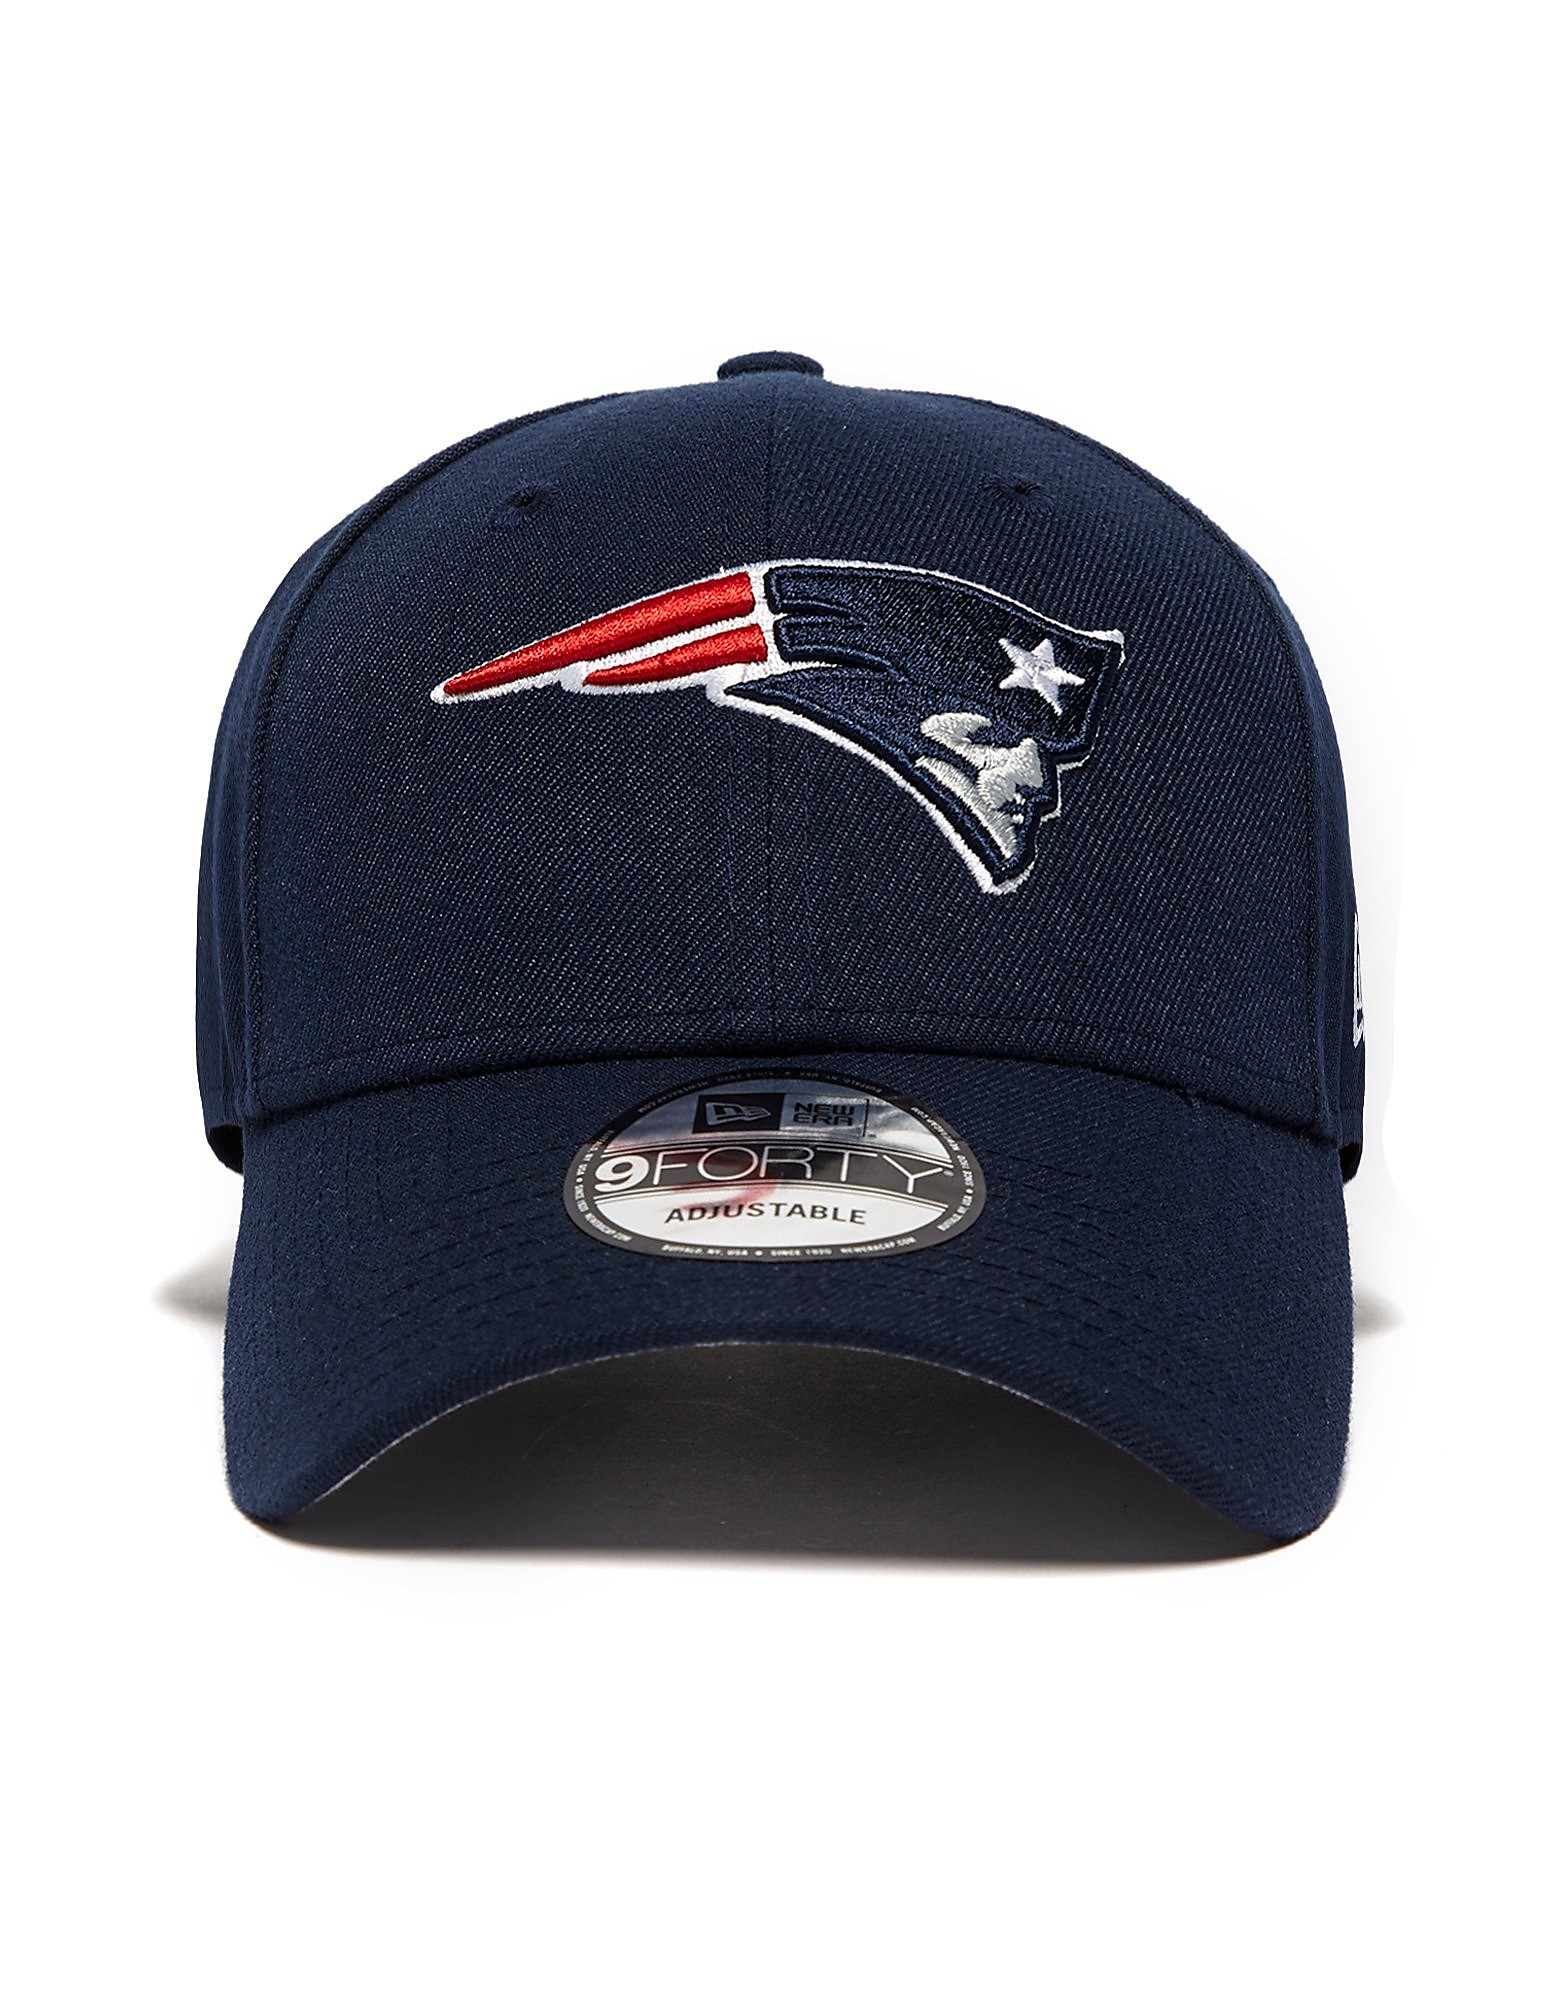 New Era New England Patriots 9FORTY Cap